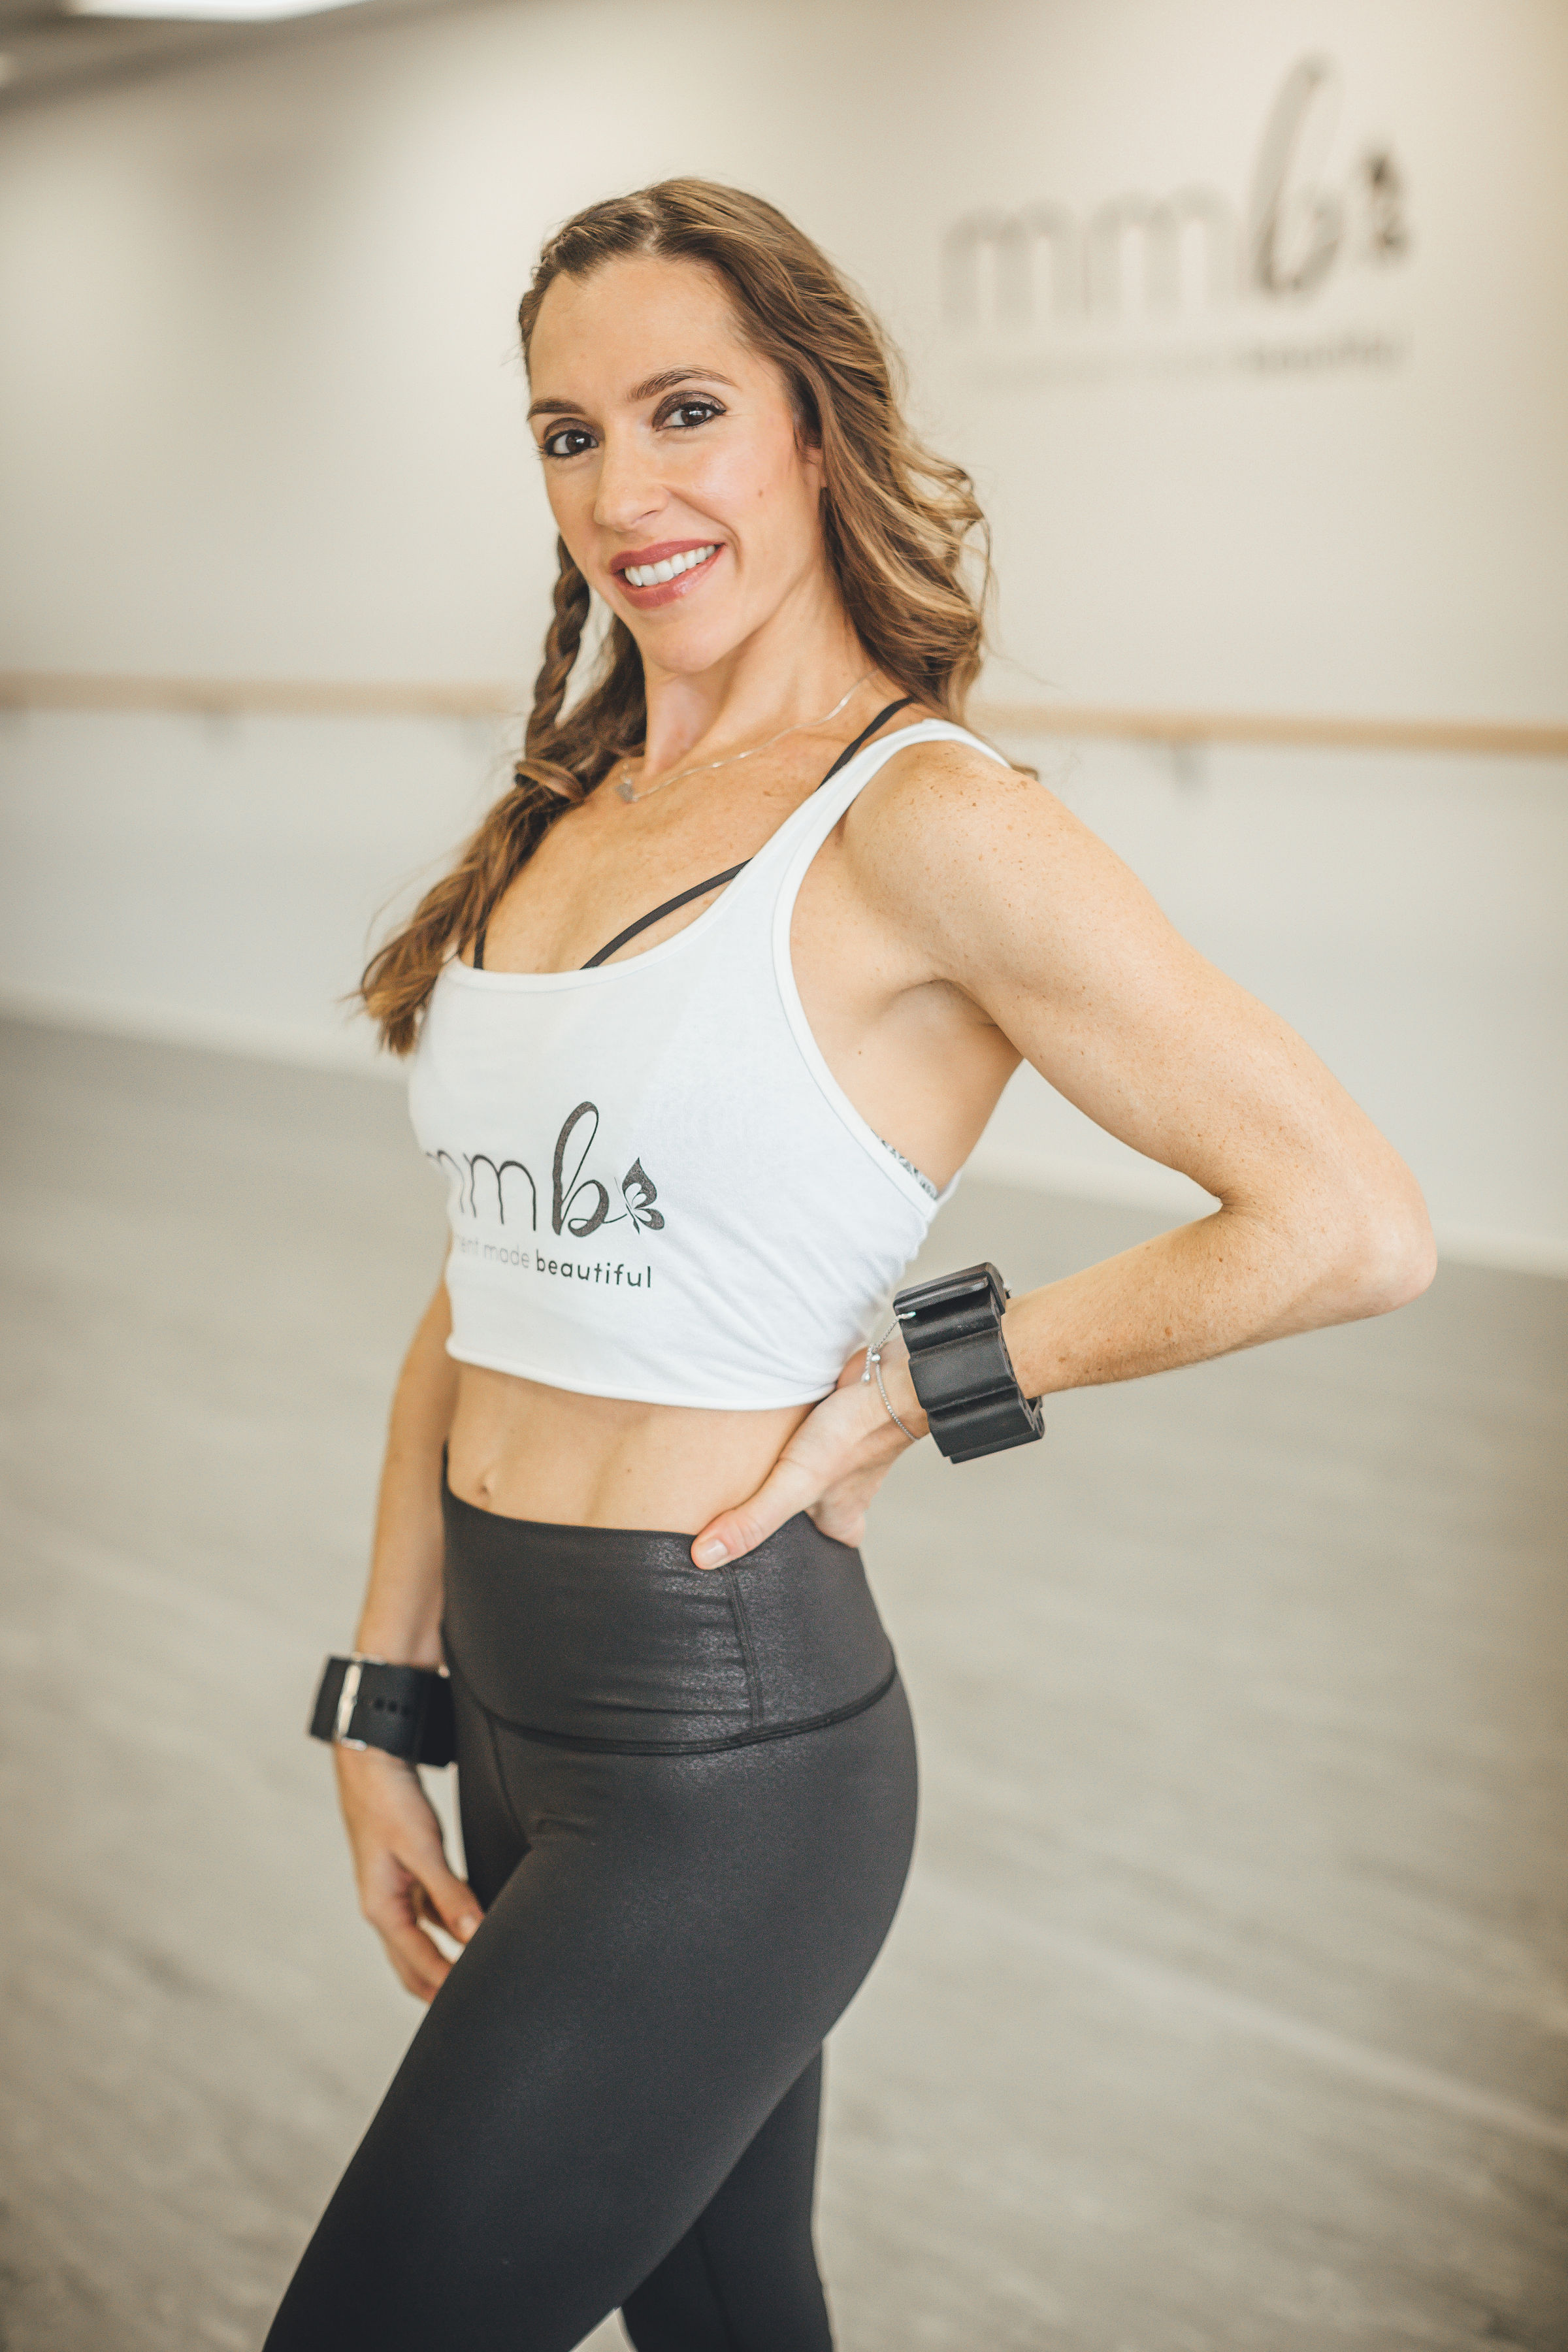 Abbi Pollyea-Owner and creator of Movement Made Beautiful. Instructor of Cardio Dance, Barre-Sculpt, Pilates, and Yoga. Lead Instructor and Choreographer for MMB.